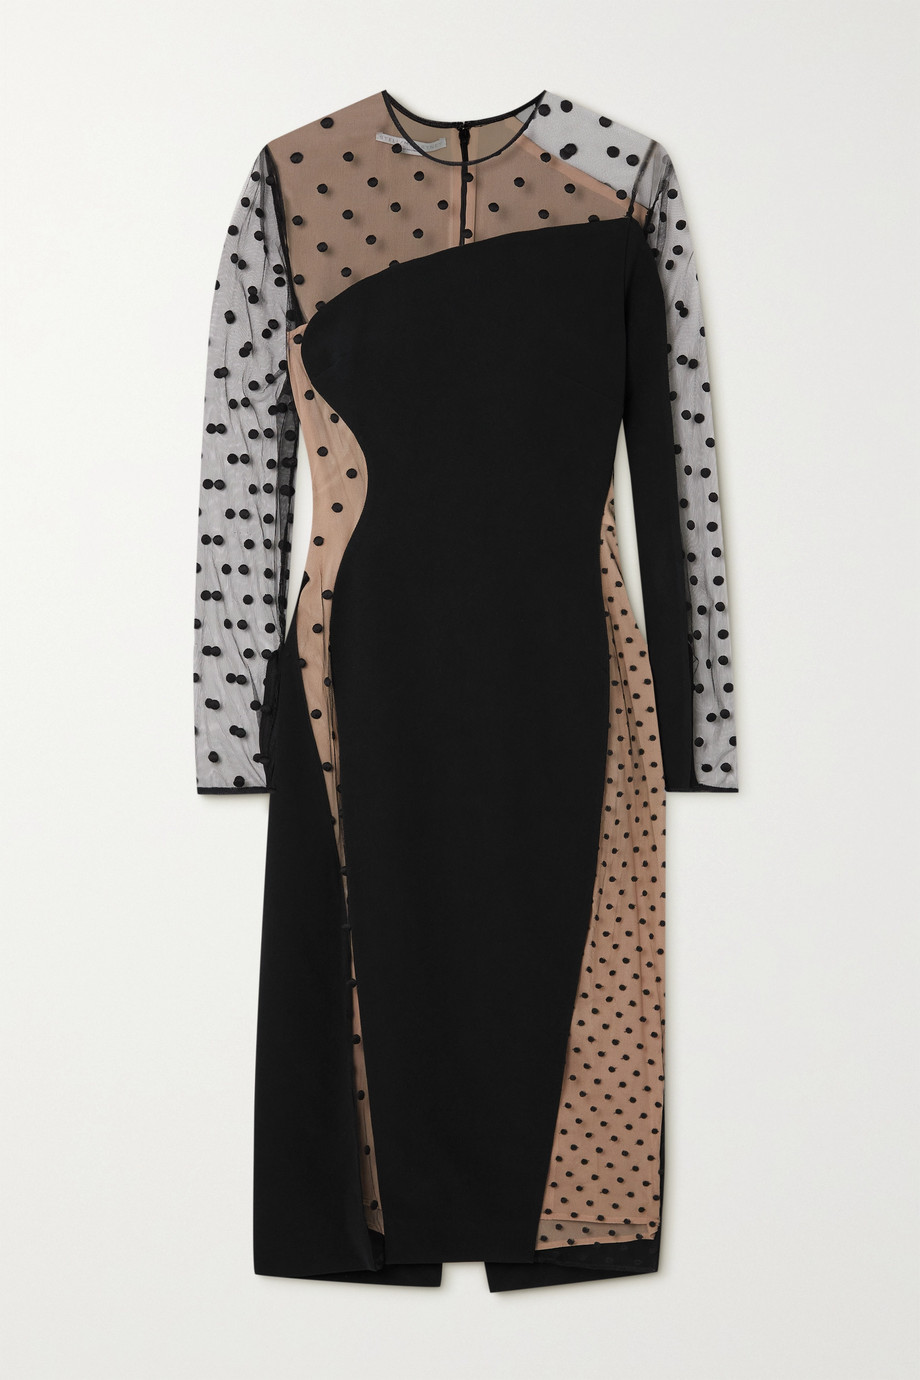 STELLA MCCARTNEY + NET SUSTAIN Arielle cady and embroidered tulle dress